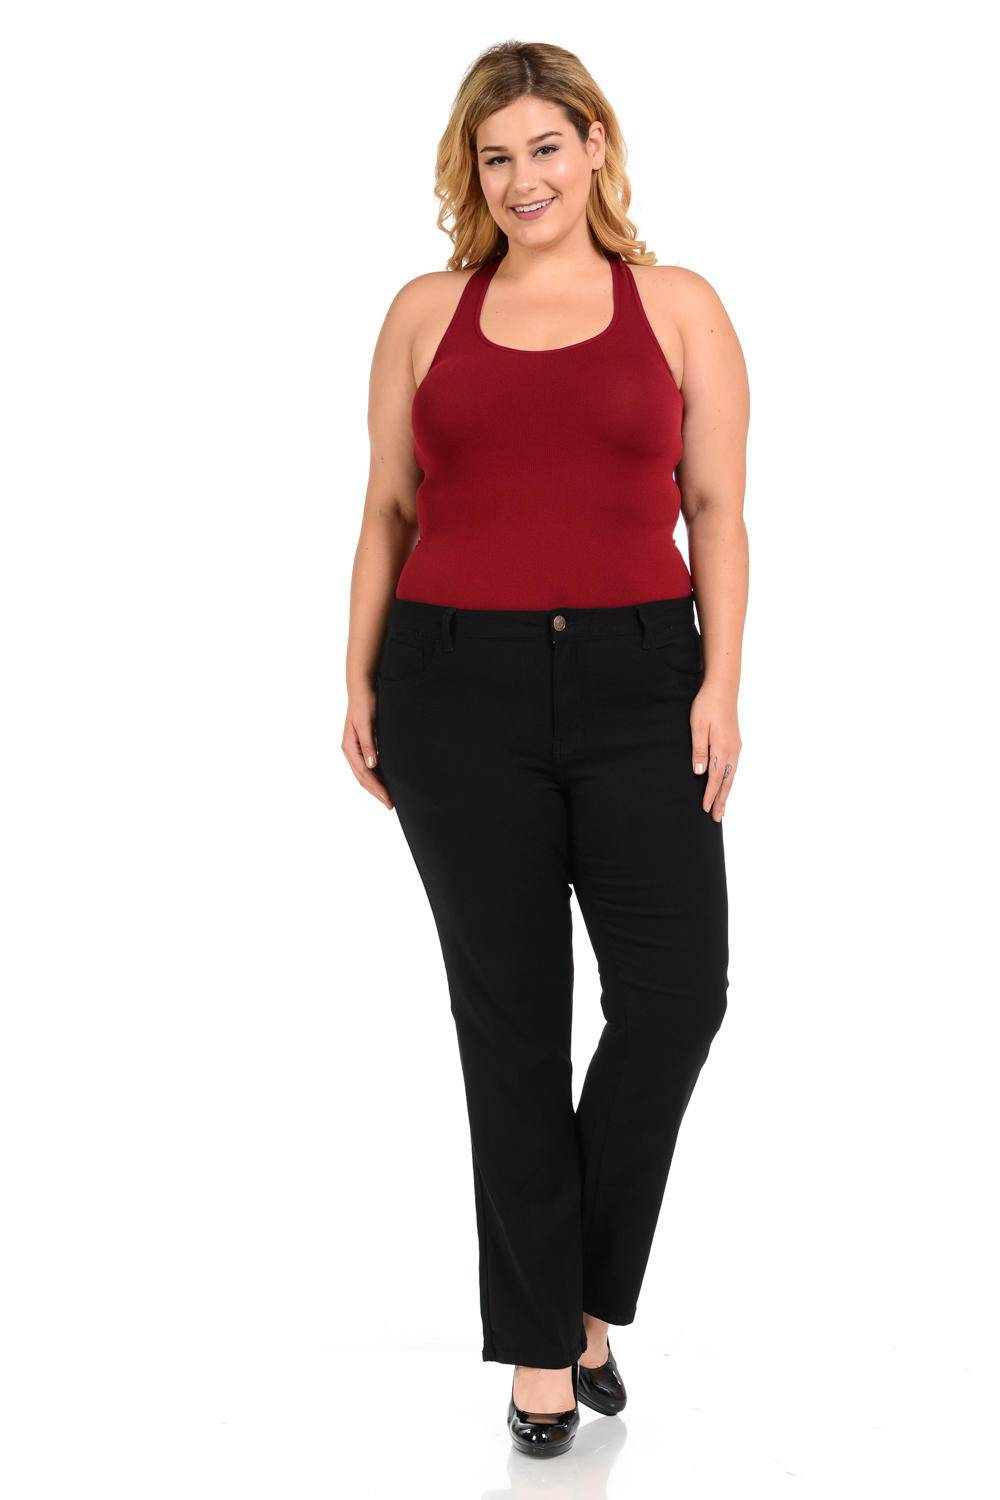 f4618c0547f34 926 Women s Jeans (Sizing  14-24) · Plus Size · High Waist · Push Up ·  Bootcut · Style W1506-1